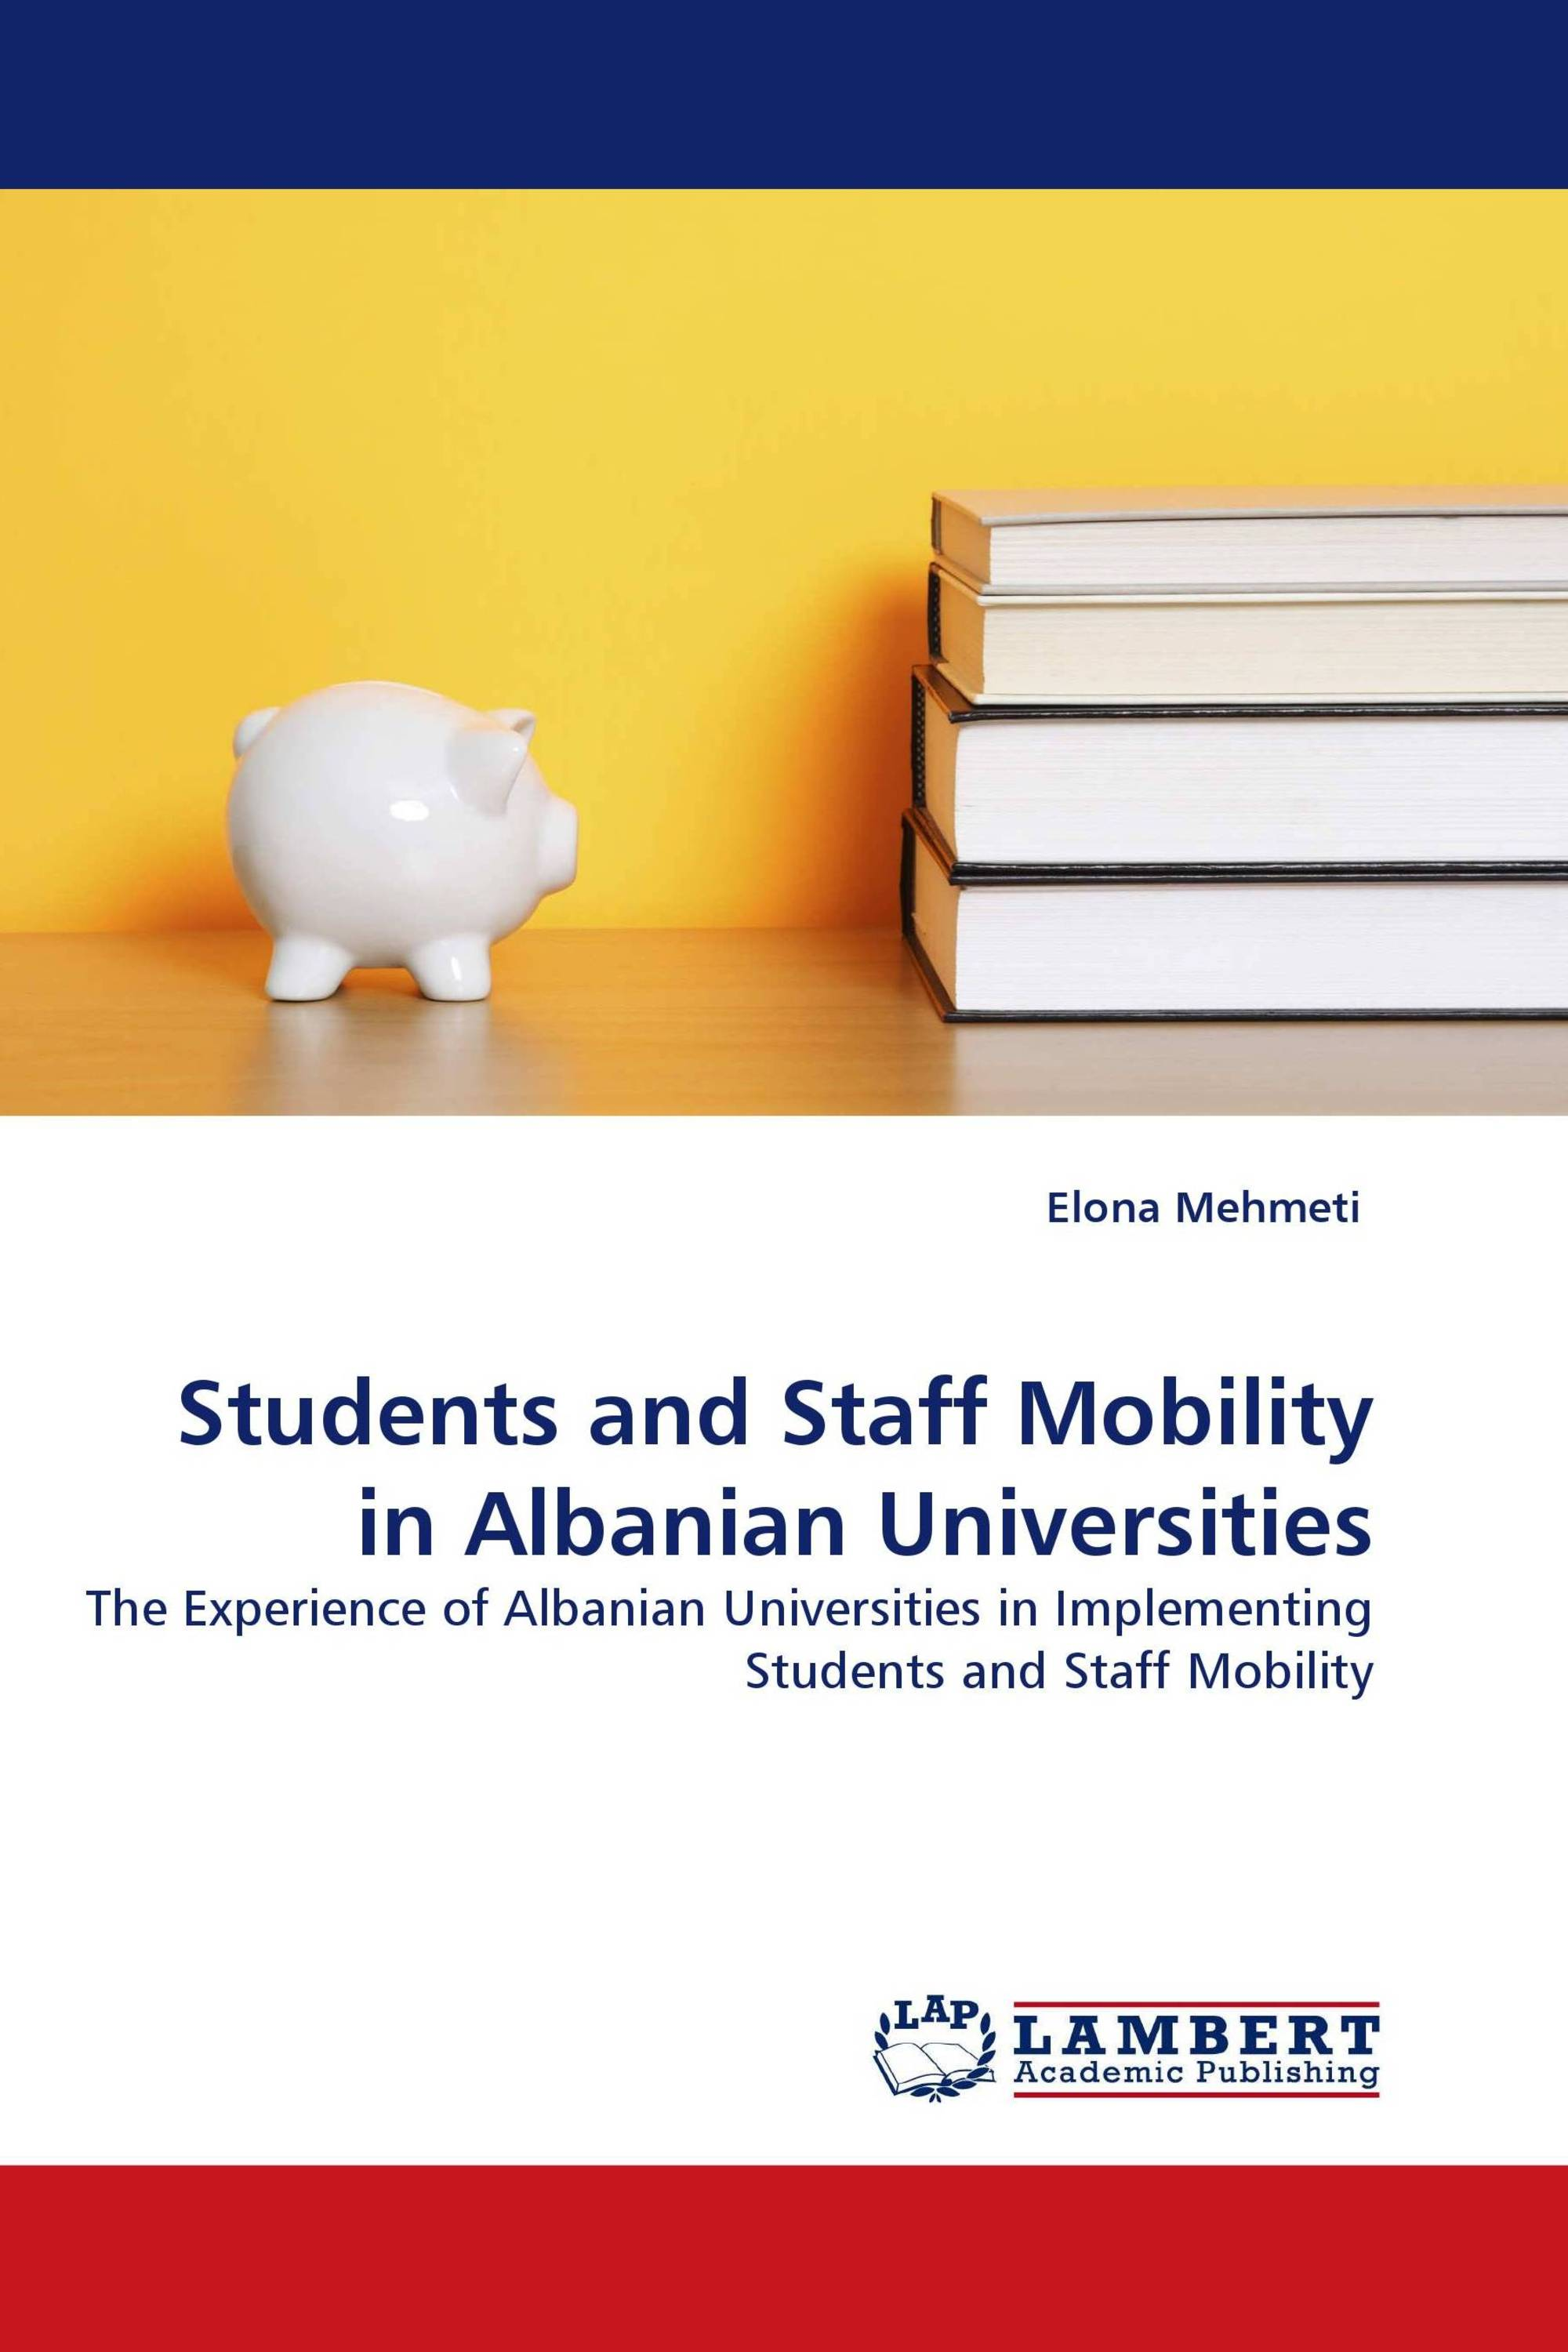 Students and Staff Mobility in Albanian Universities